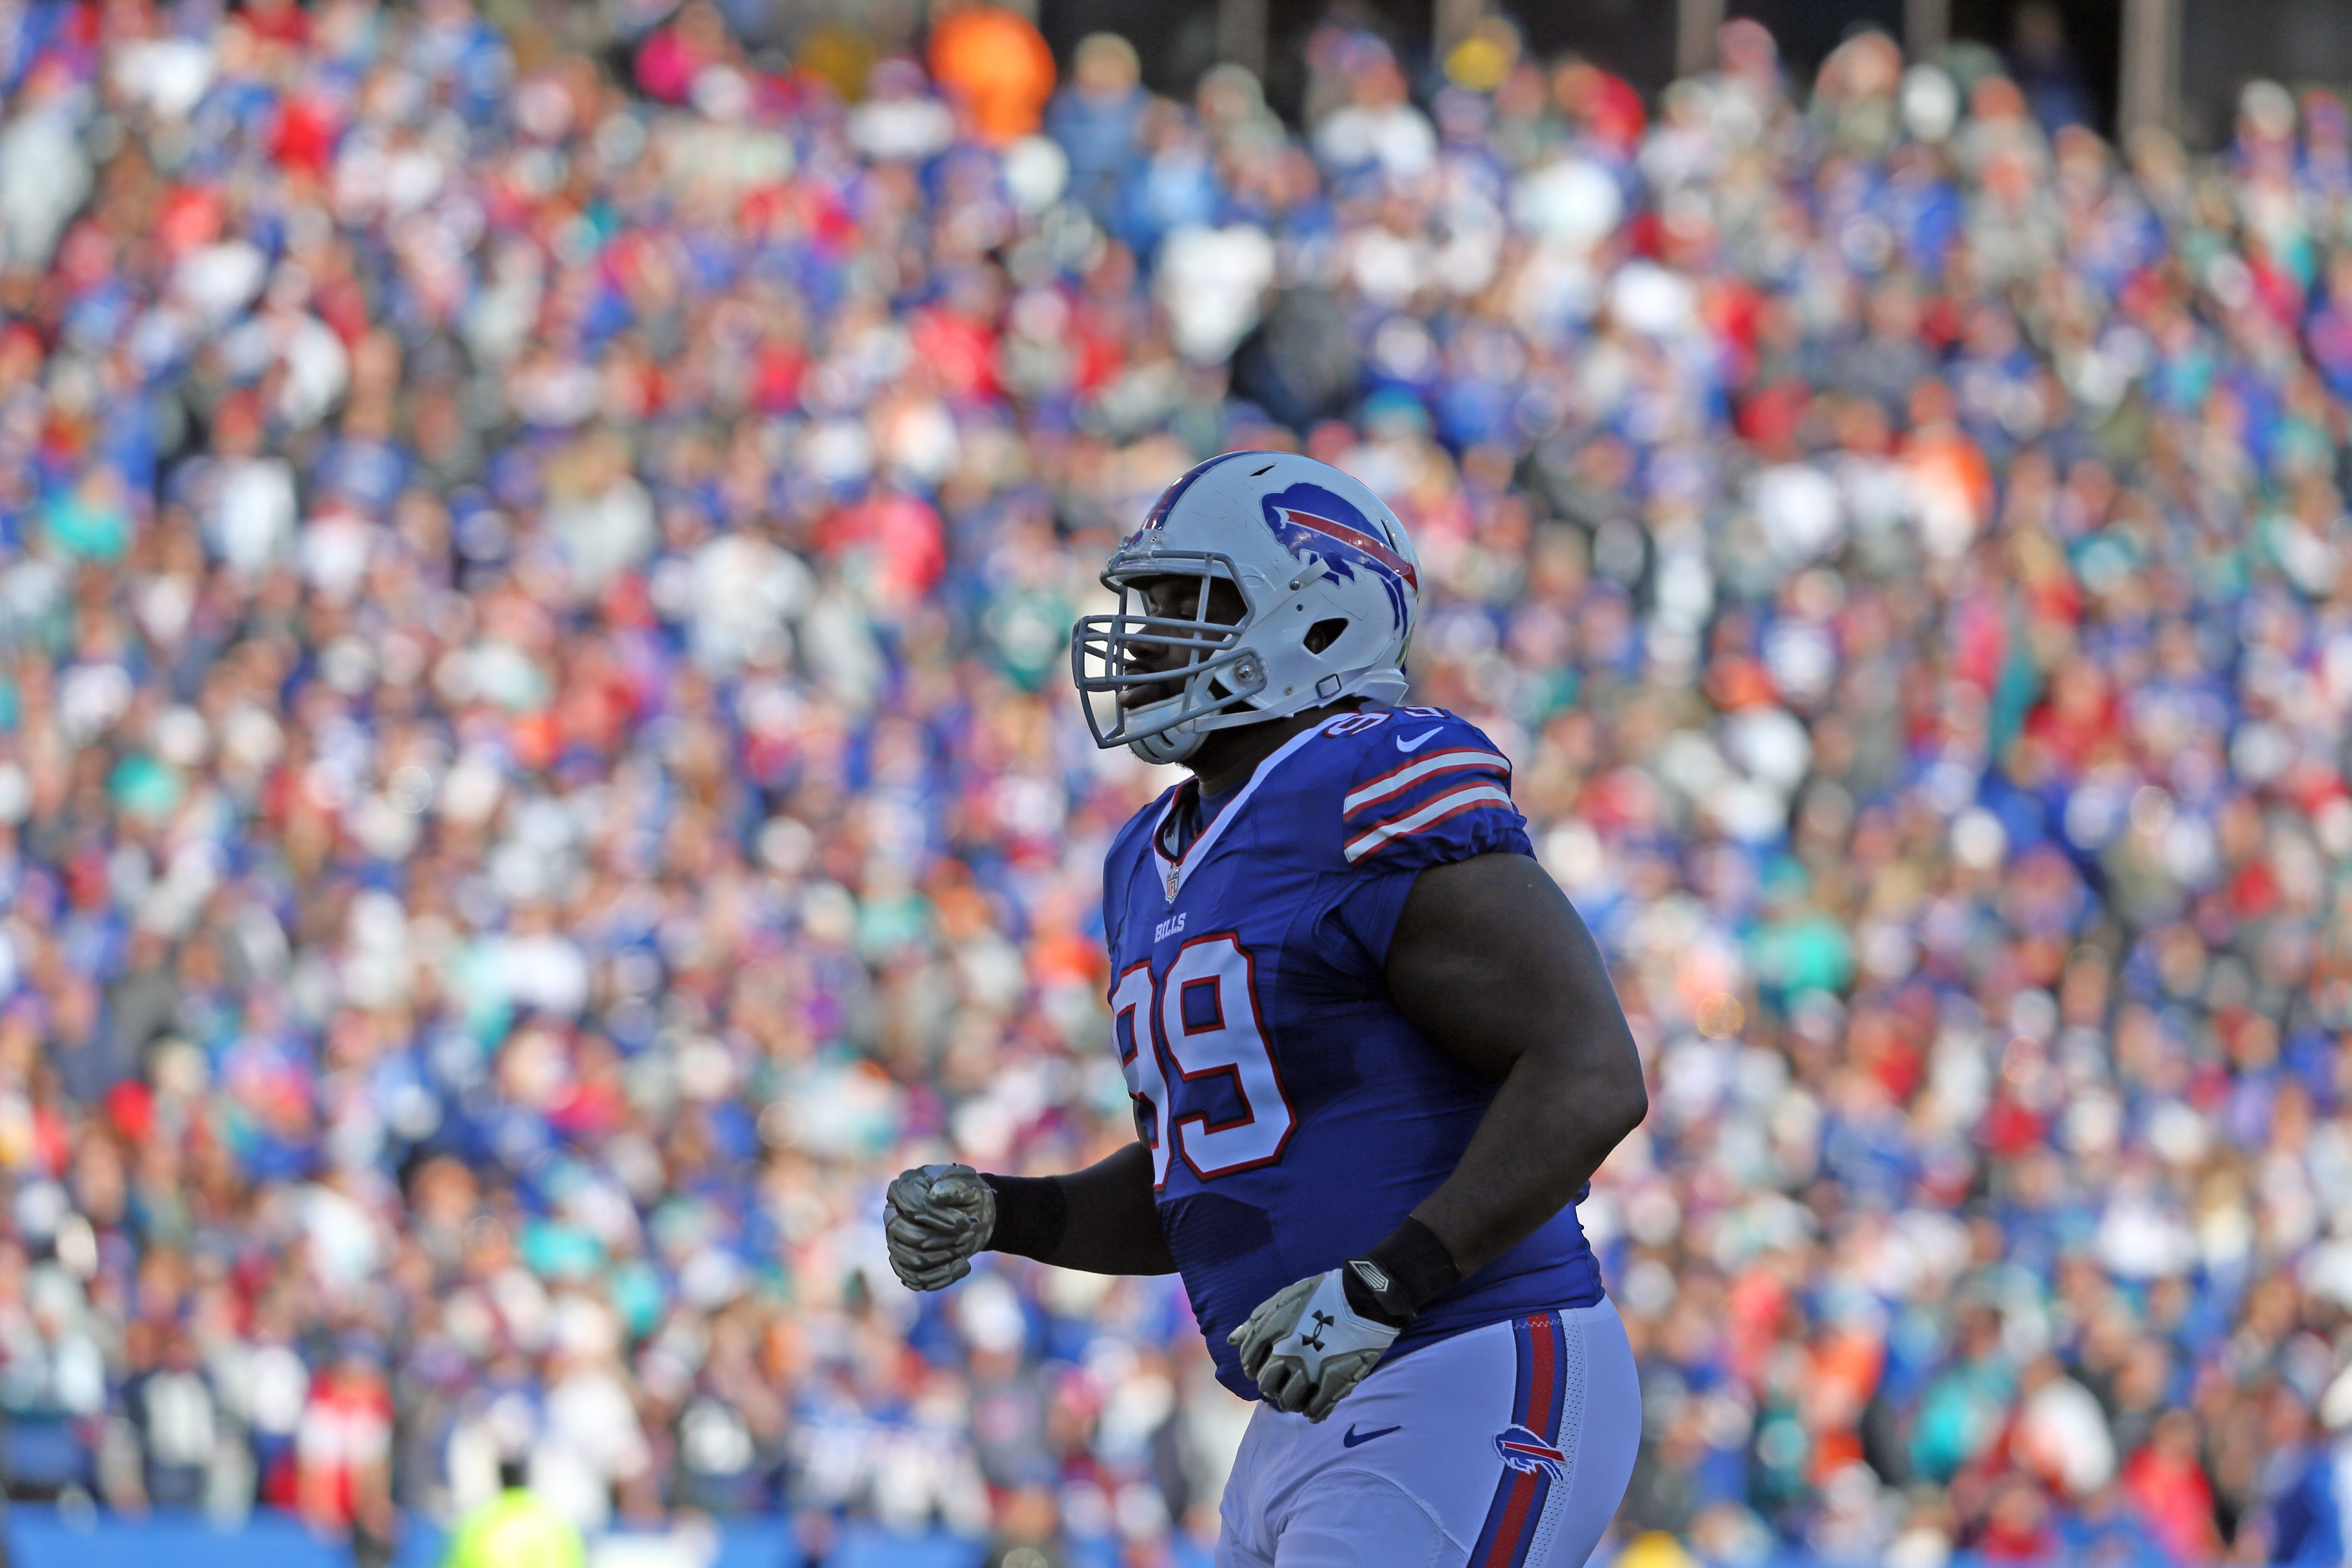 Buffalo Bills defensive tackle Marcell Dareus (99) in the second quarter at Ralph Wilson Stadium in Orchard Park, NY on Sunday, Nov. 8, 2015.  (James P. McCoy/ Buffalo News)